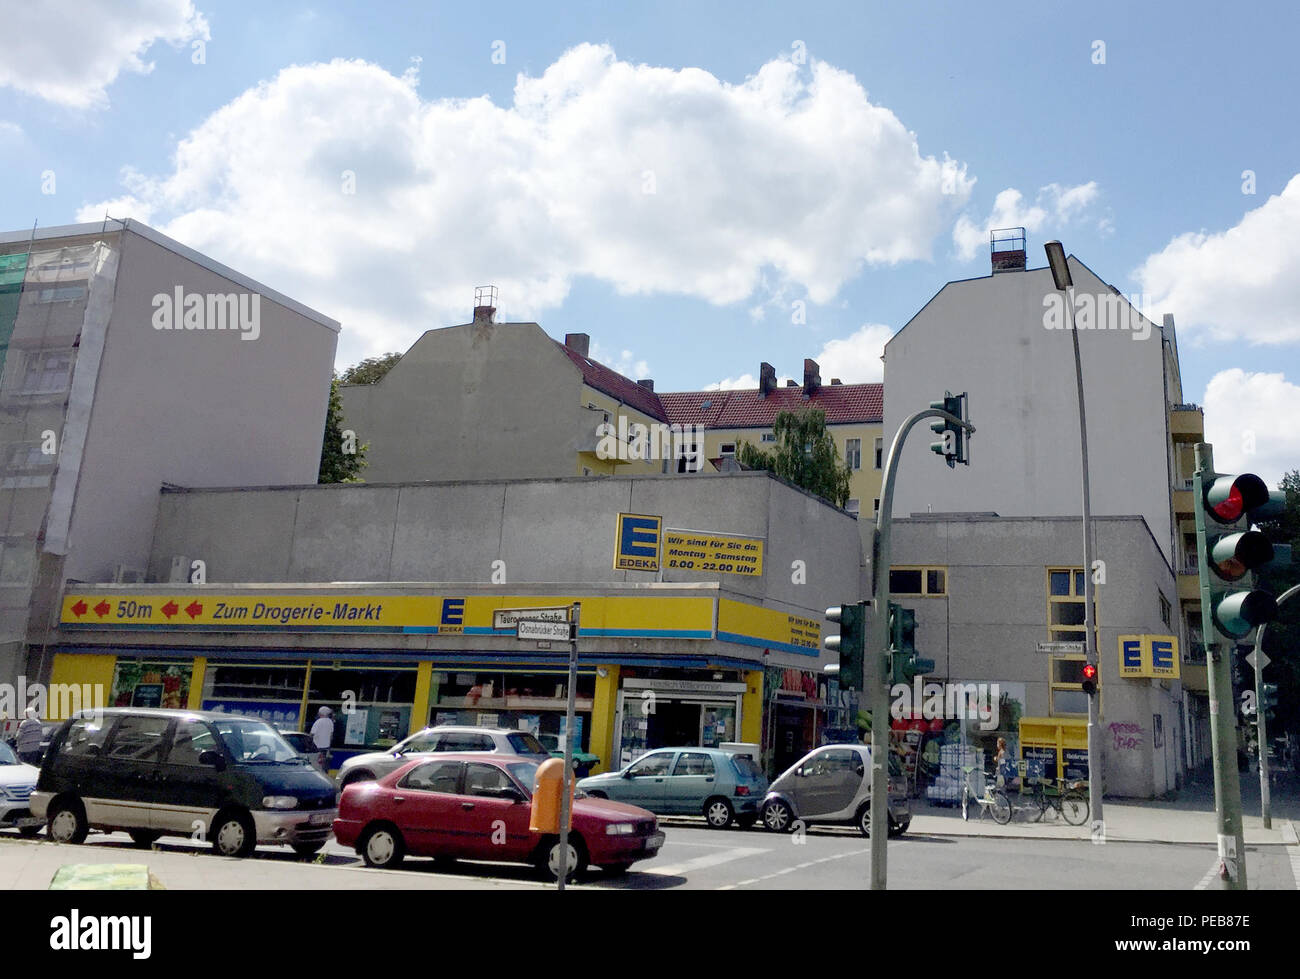 Berlin, Germany. 03rd Aug, 2018. Today's supermarket, which was shown as a Bolle market in the film 'Lola rennt'. Twenty years ago, on 20 August, the film was released. Credit: Gregor Tholl/dpa-Zentralbild/dpa/Alamy Live News - Stock Image